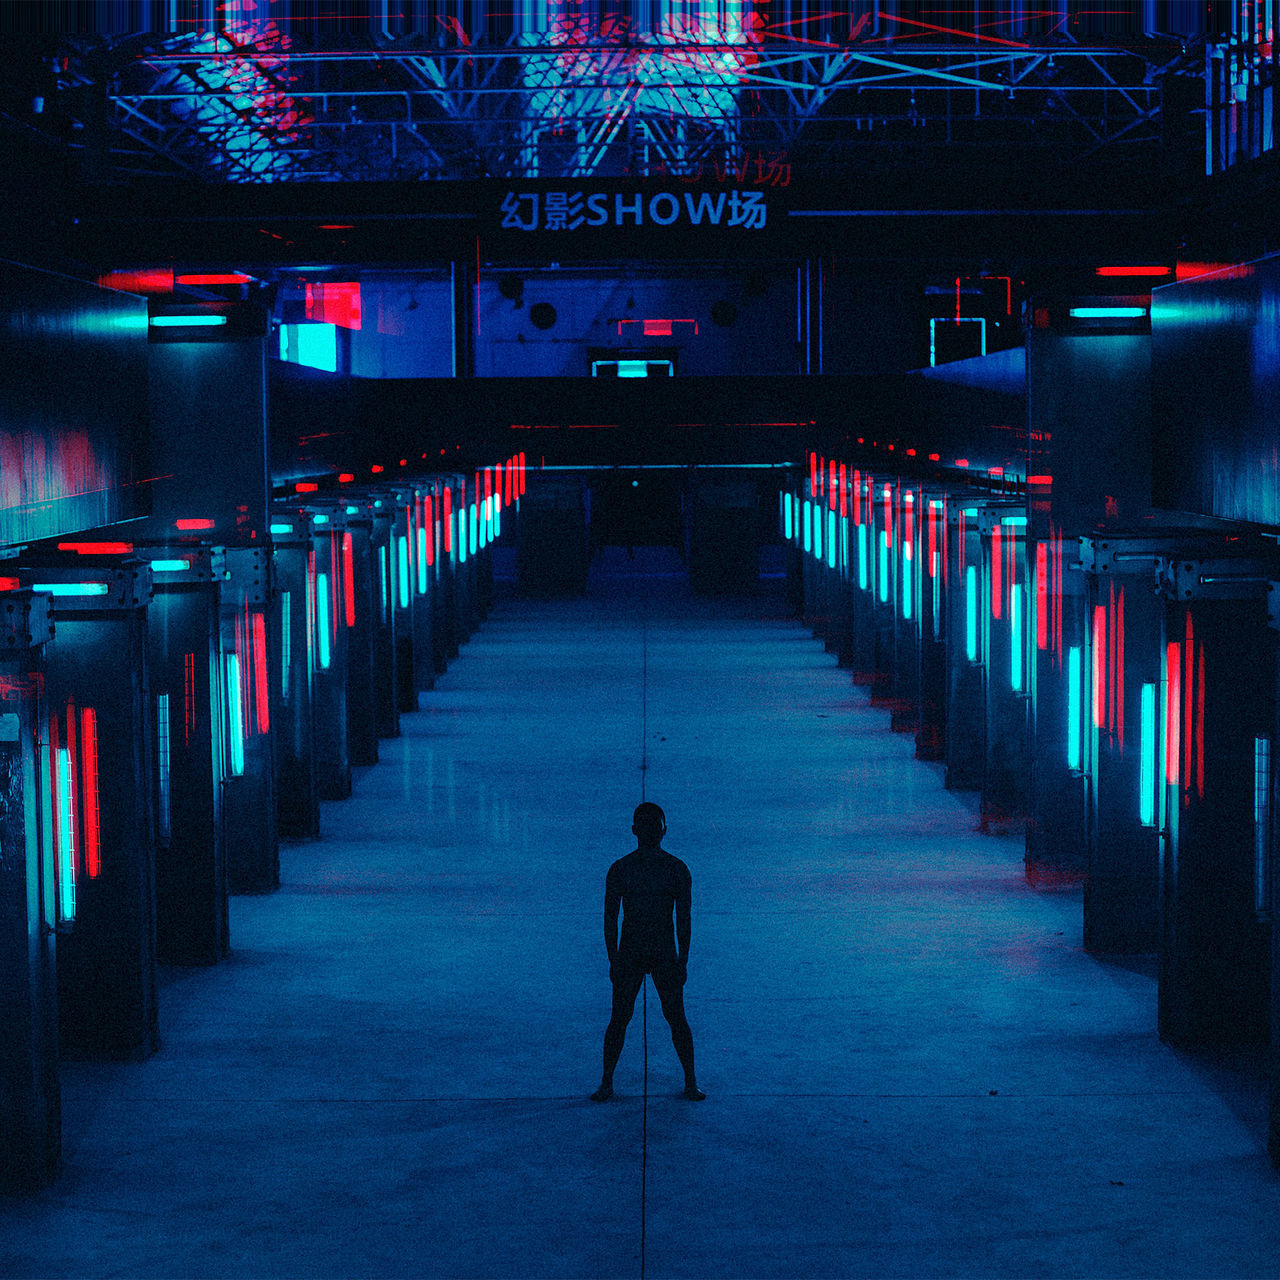 Adult Architecture day illuminated In a row indoors men one man only one person only men people neon life